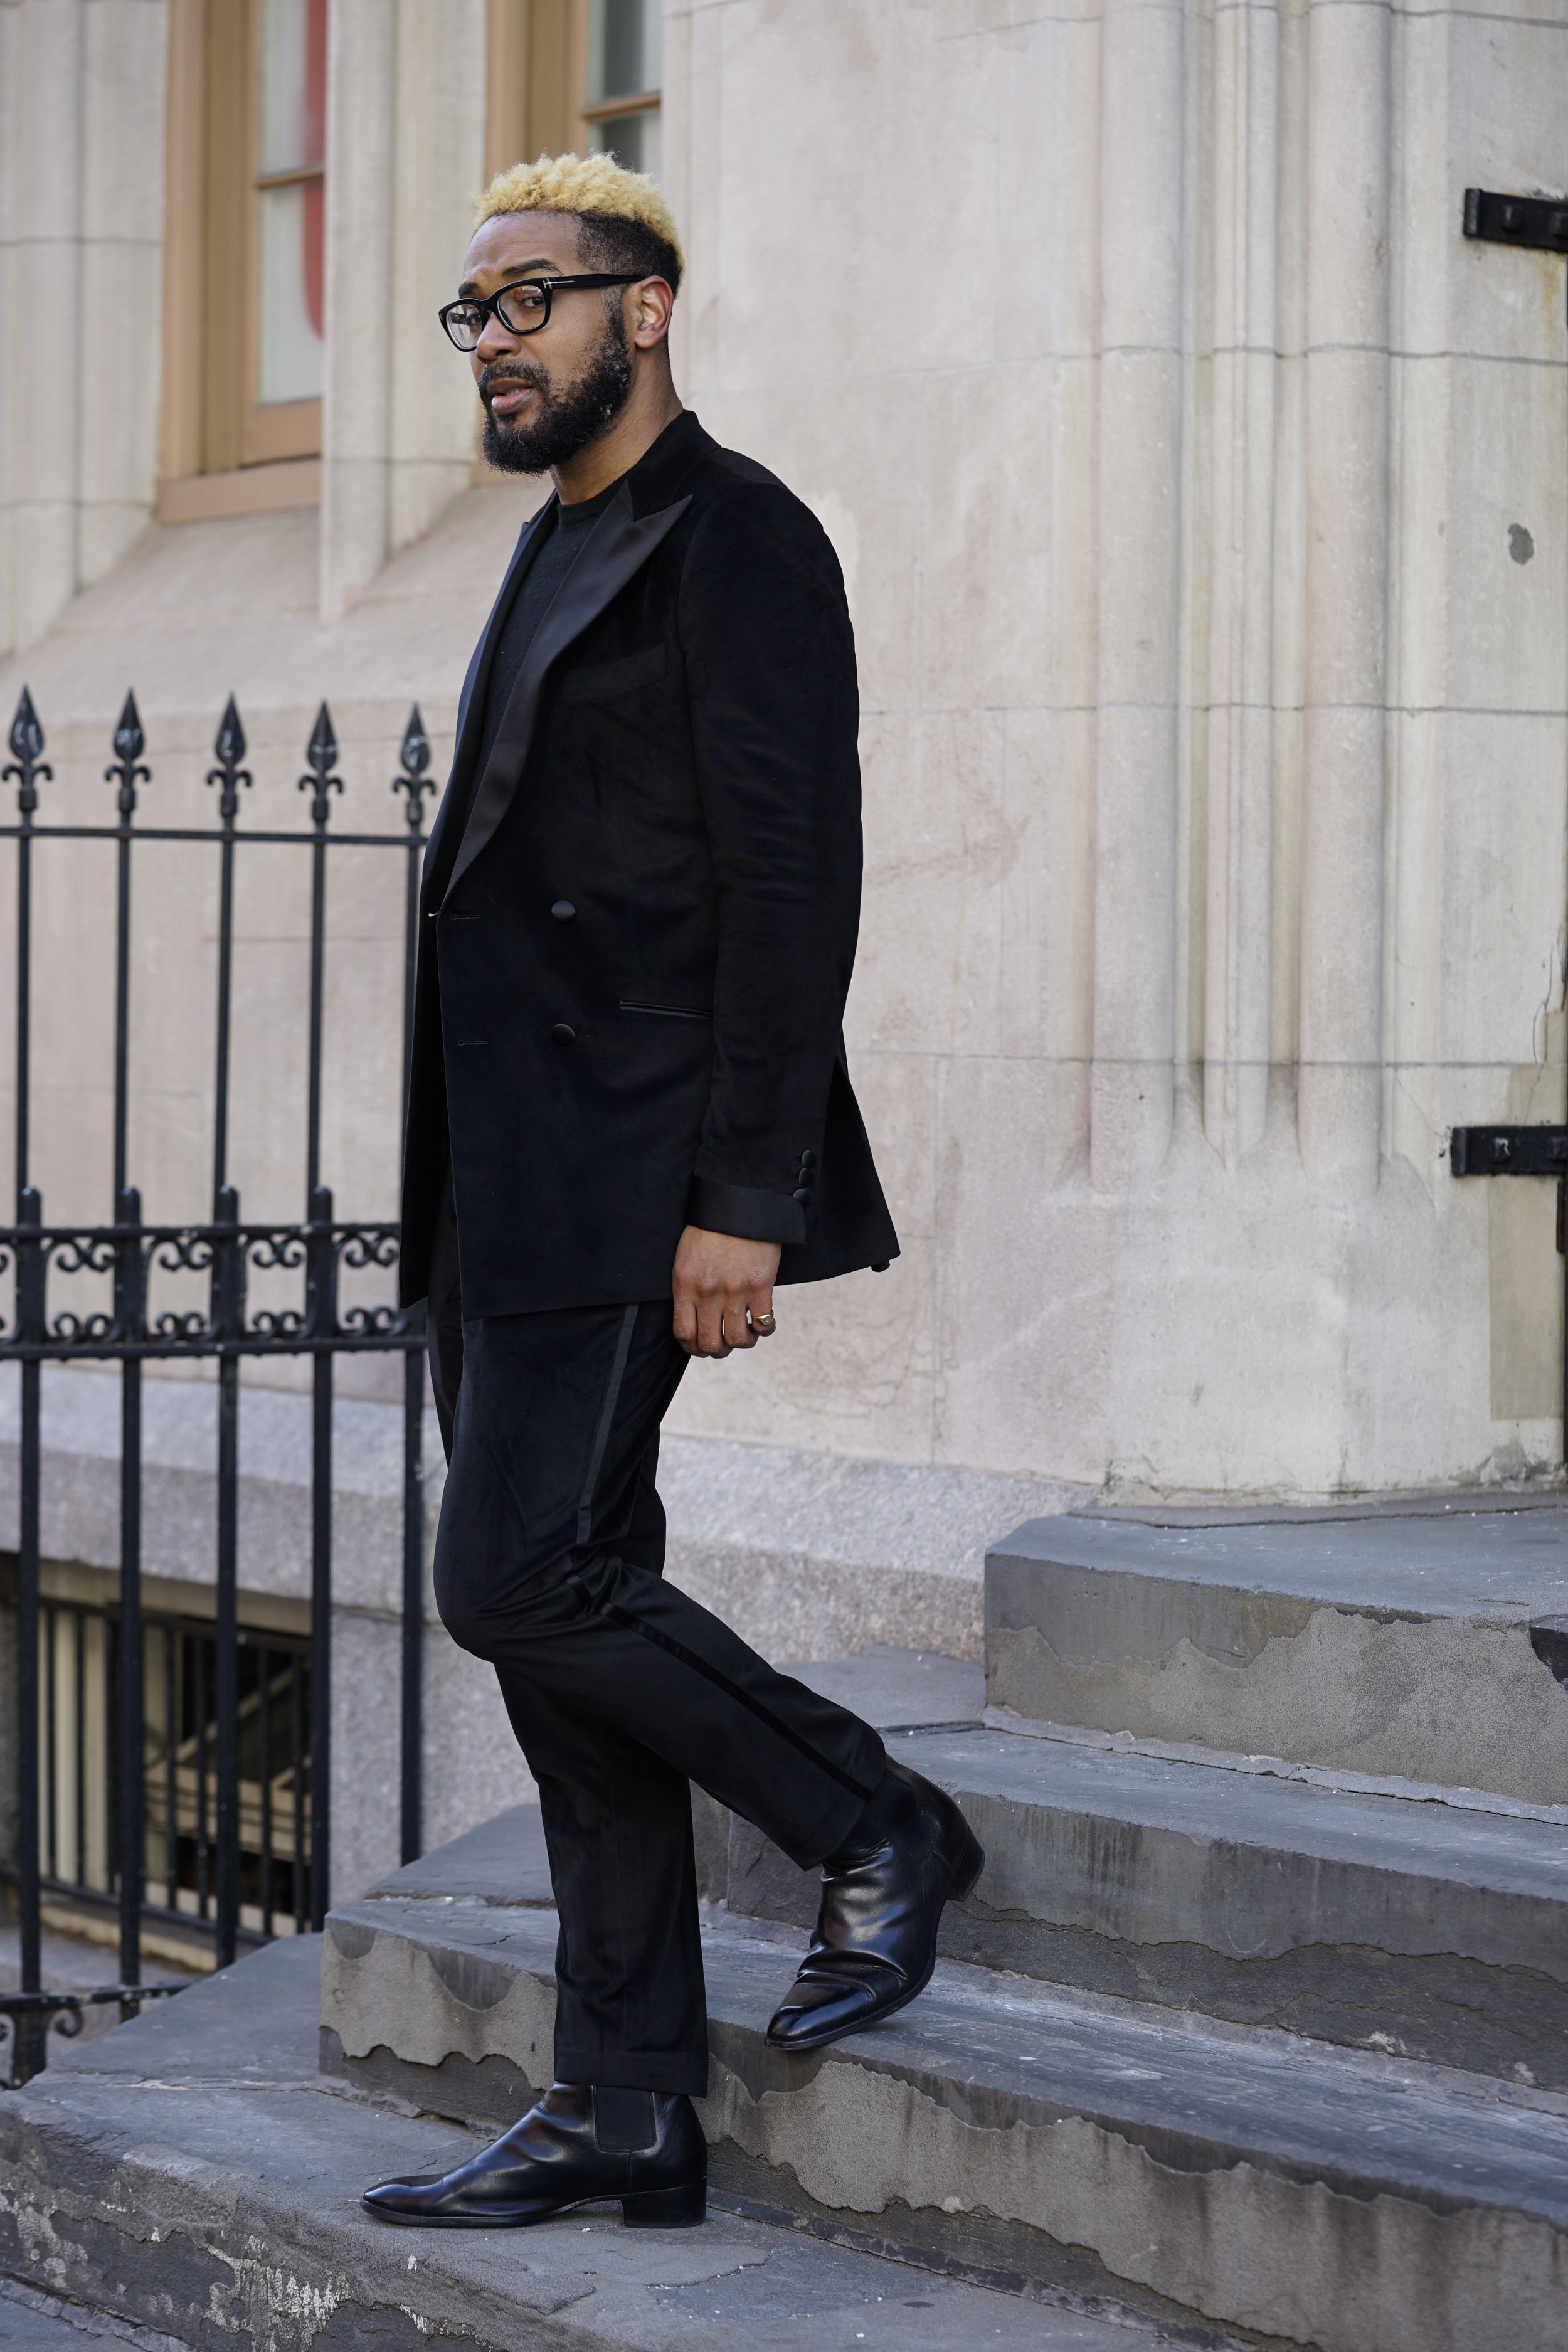 Double breasted velvet jacket and trousers by Kamsten, Chelsea boots by Saint Laurent, Frames by Tom Ford